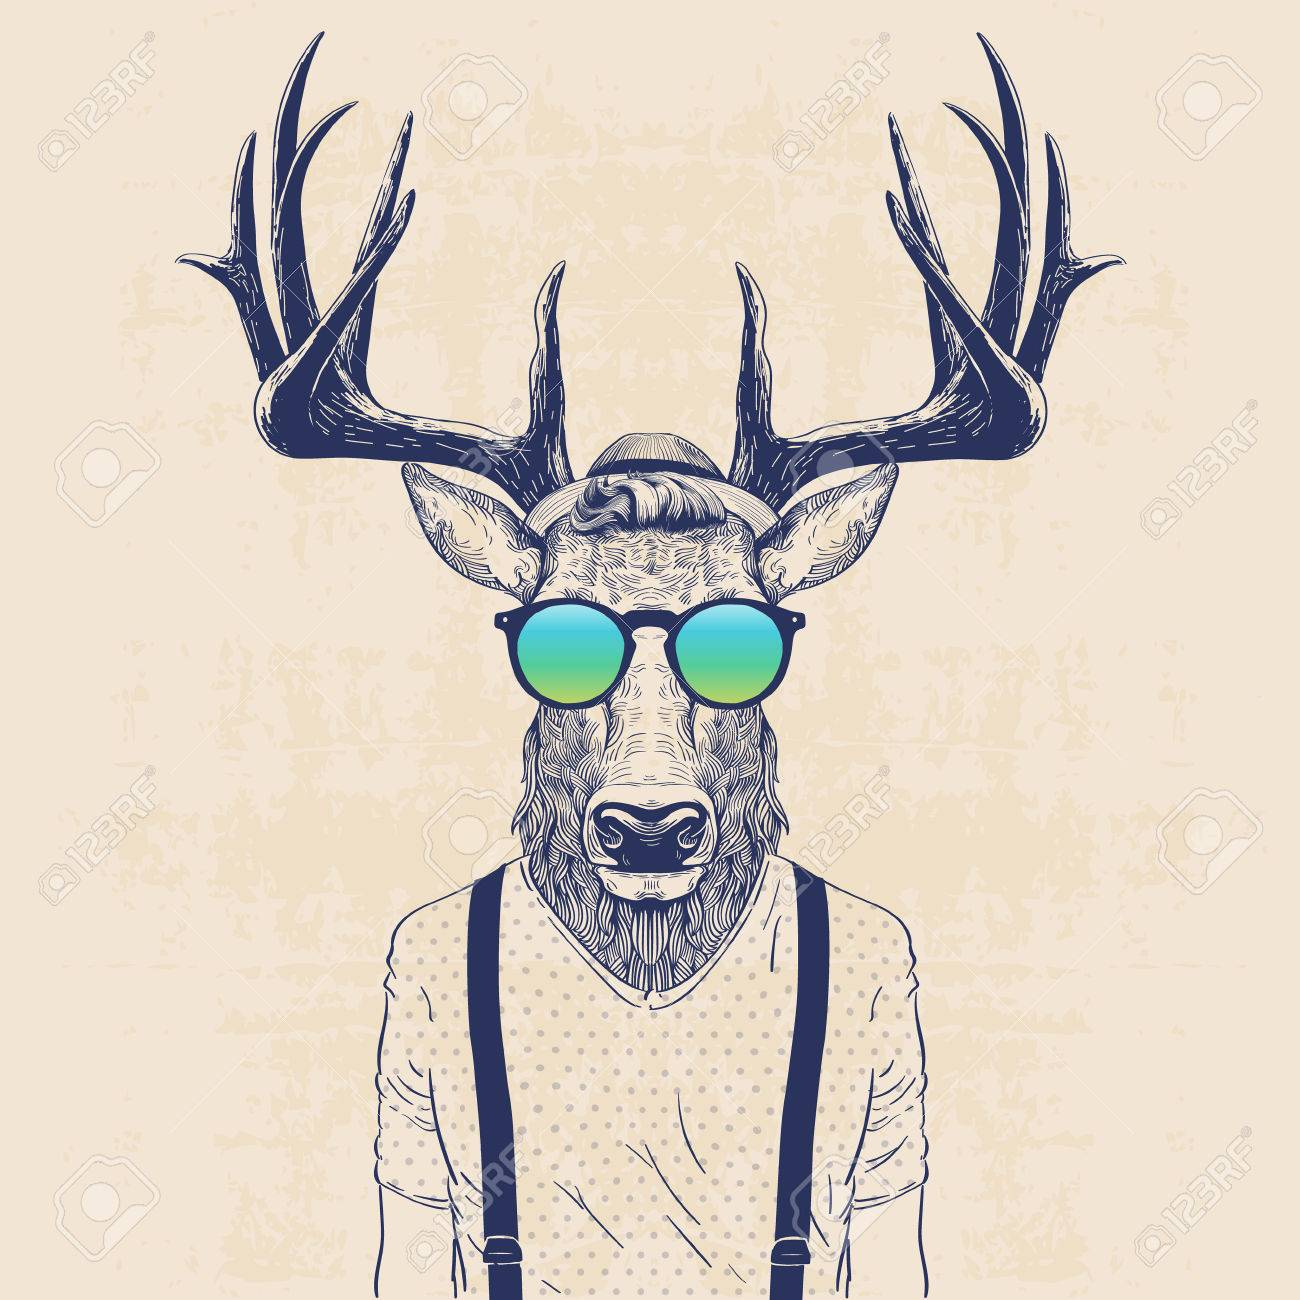 Illustration Of Deer Dressed Up Like Cool Hipster Royalty Free Cliparts Vectors And Stock Illustration Image 56716269